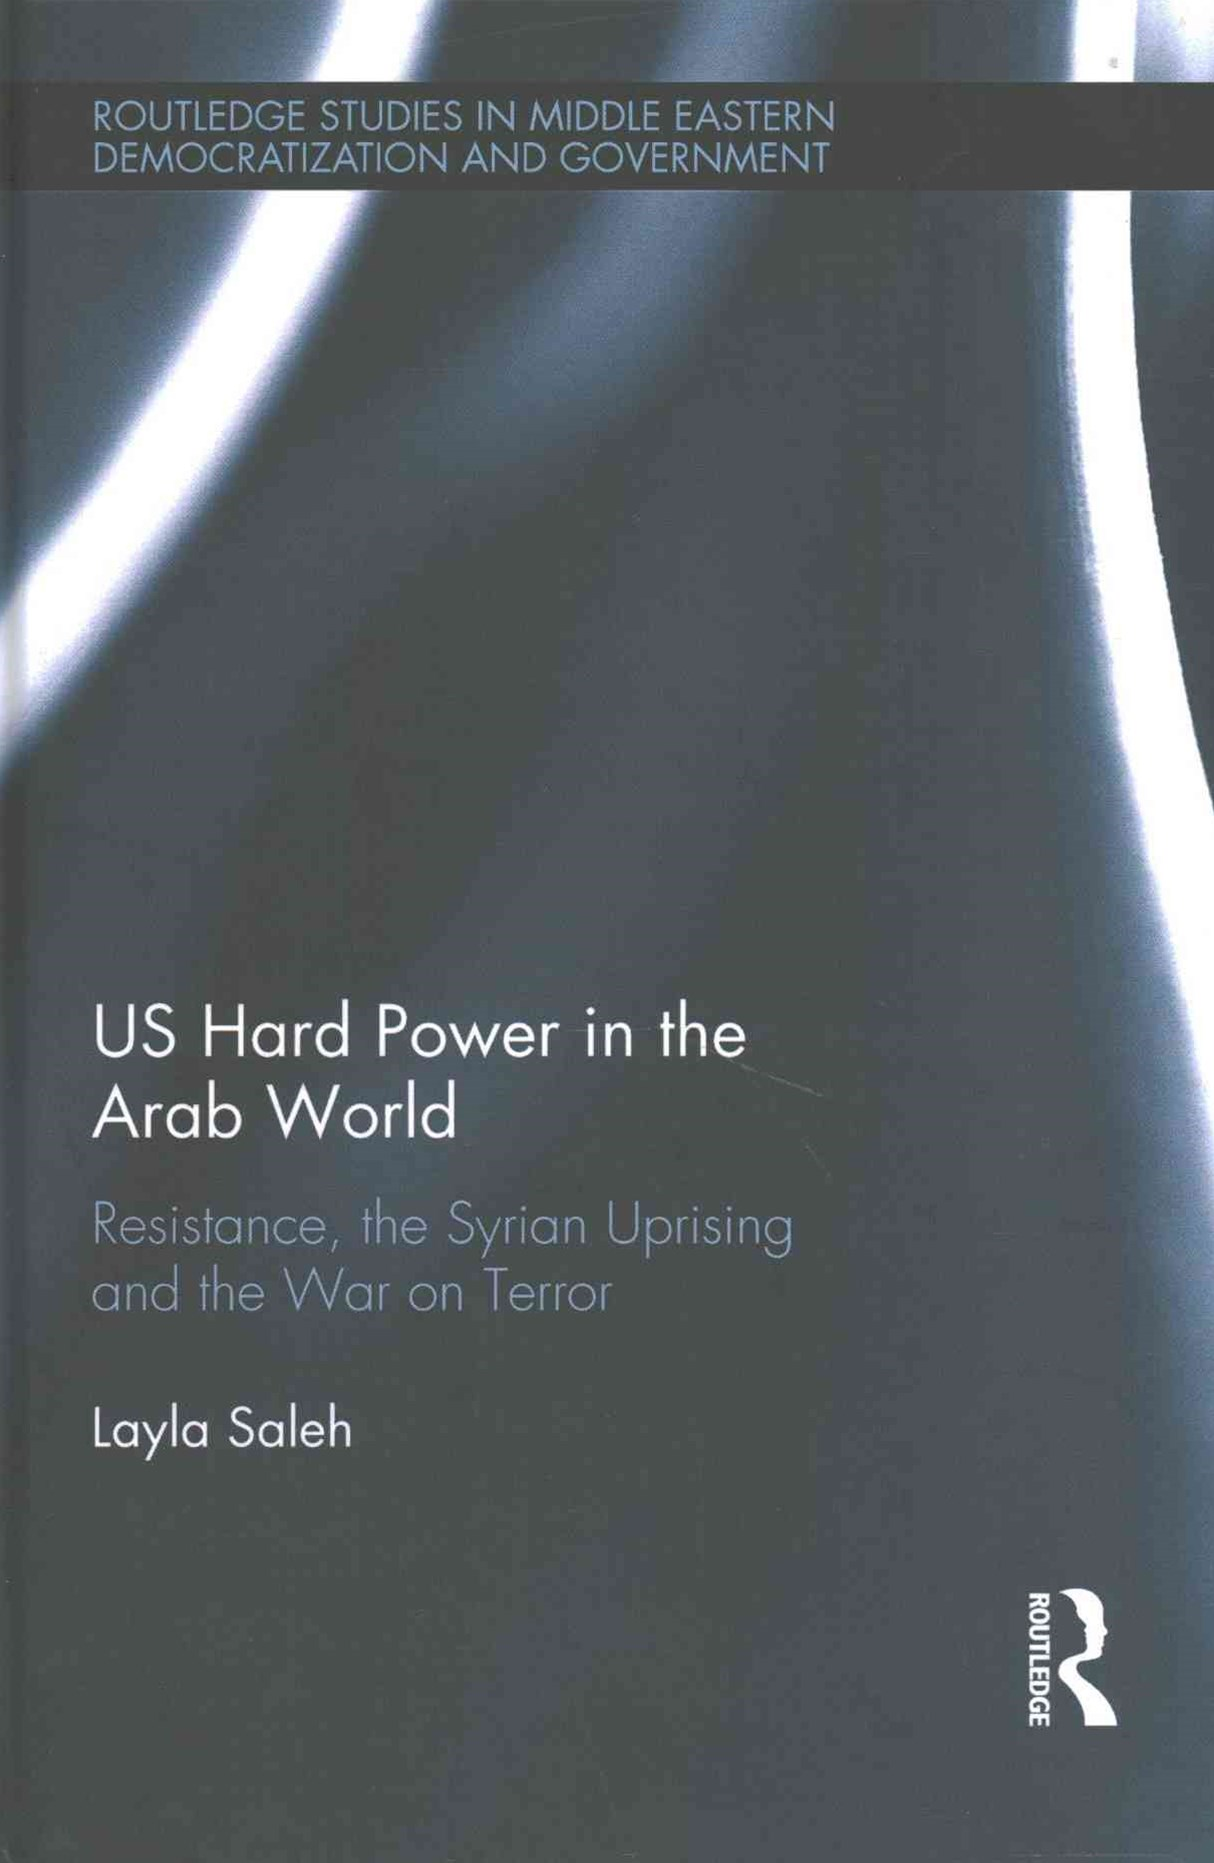 US Hard Power in the Arab World